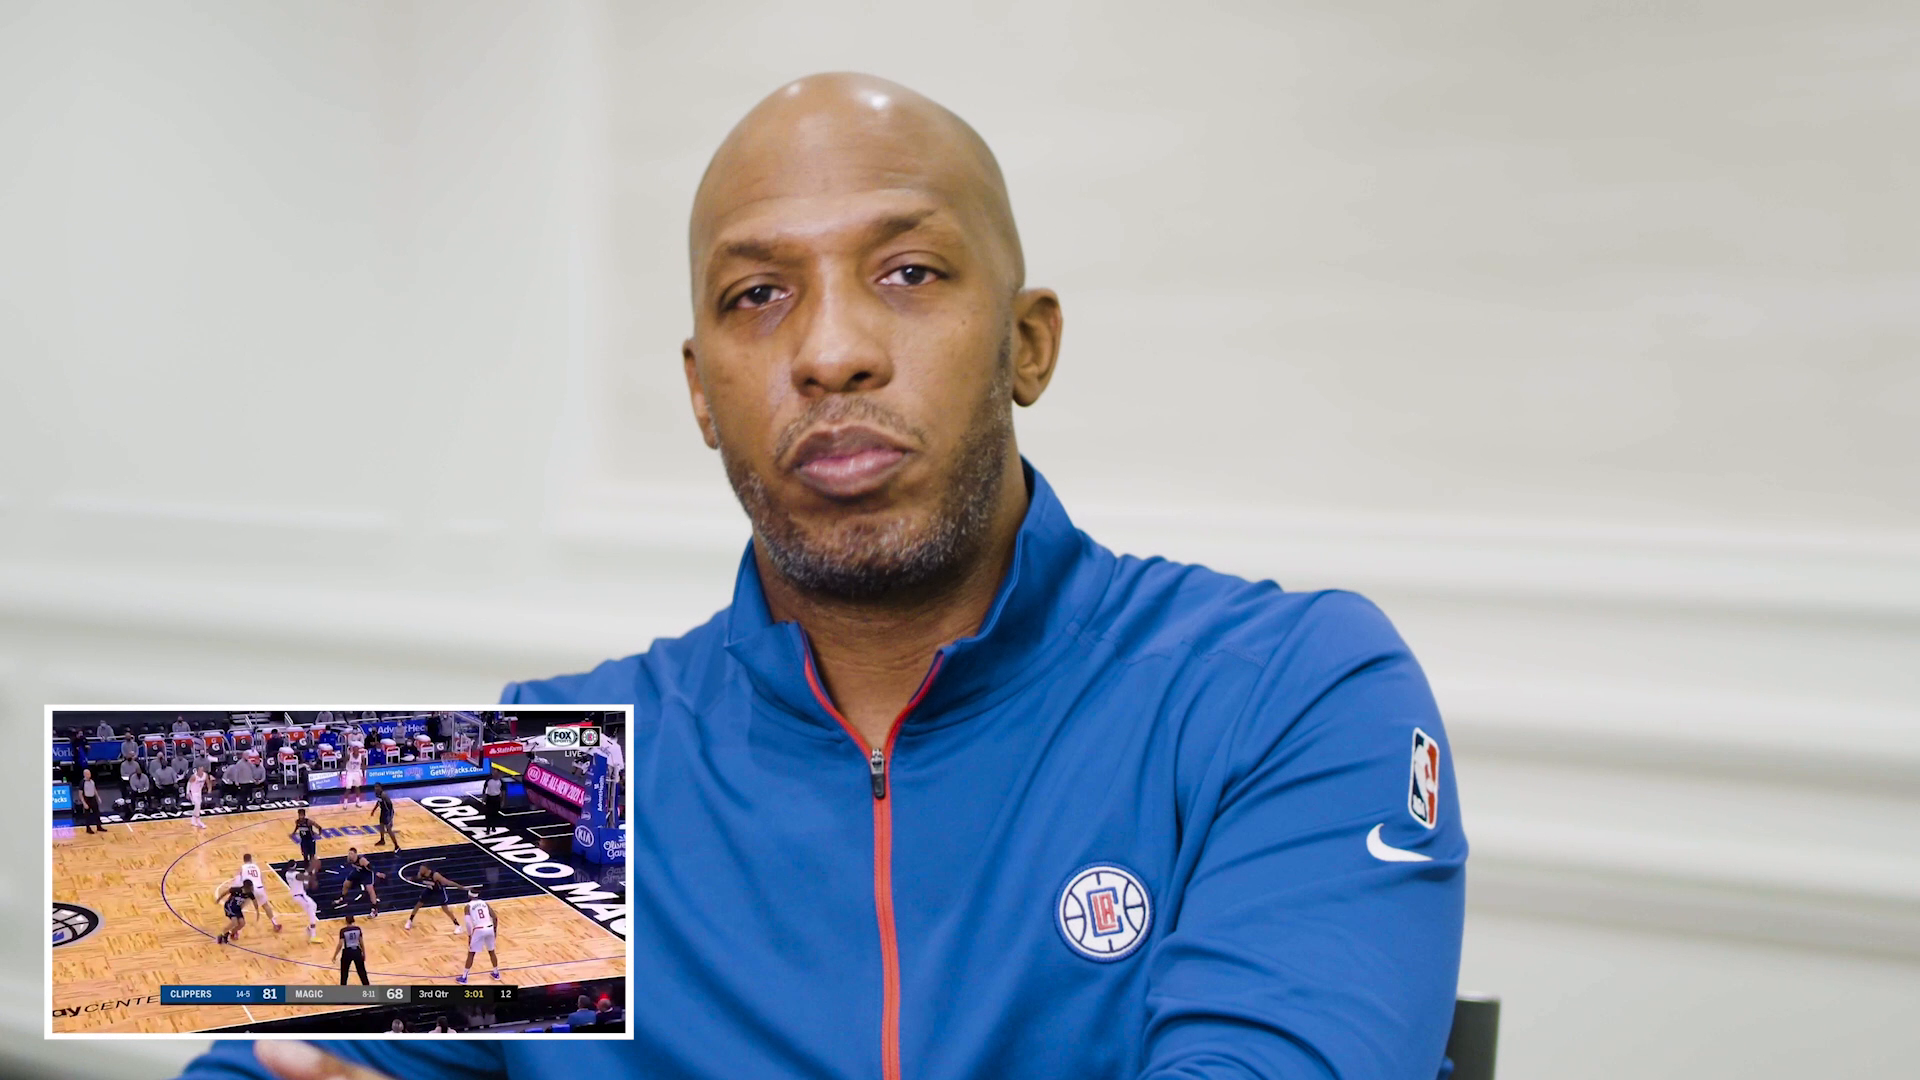 CarMax Beyond The Play With Chauncey Billups